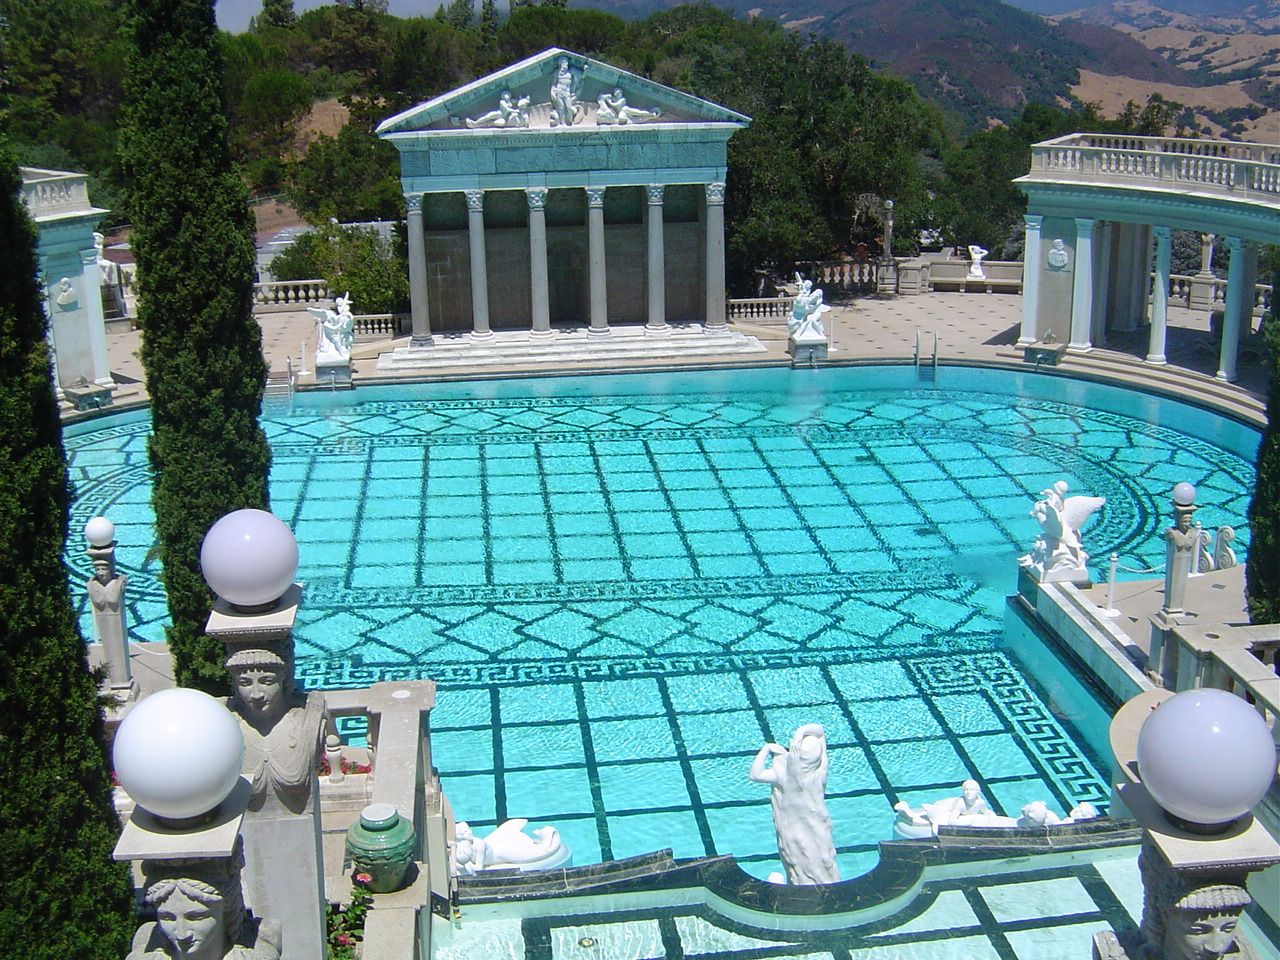 Hearst castle pool my favorite pool i have ever seen for Castle gardens pool